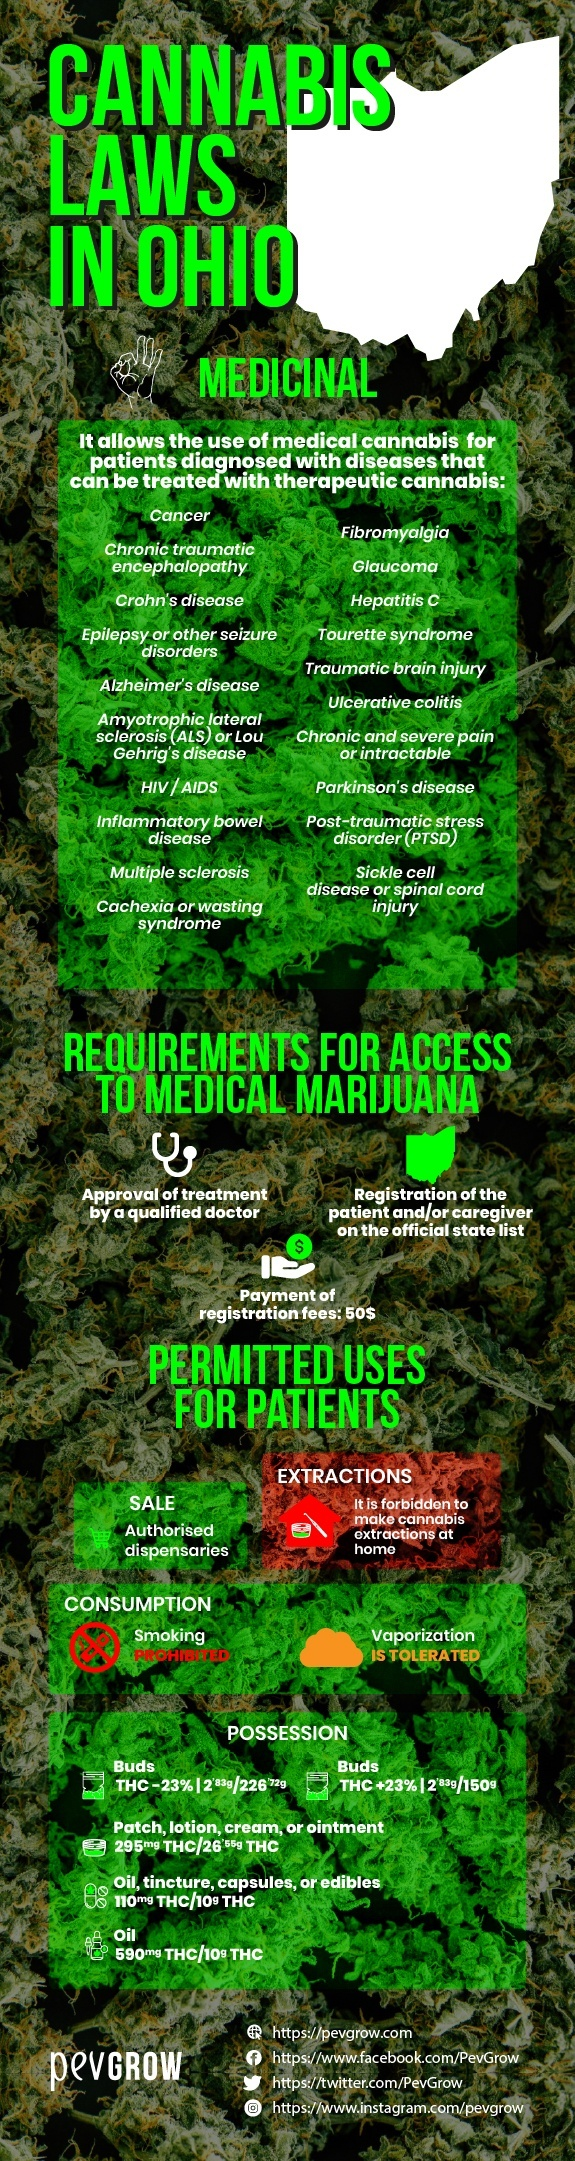 Cannabis-laws-in-Ohio-sanctions-and-permitted-uses